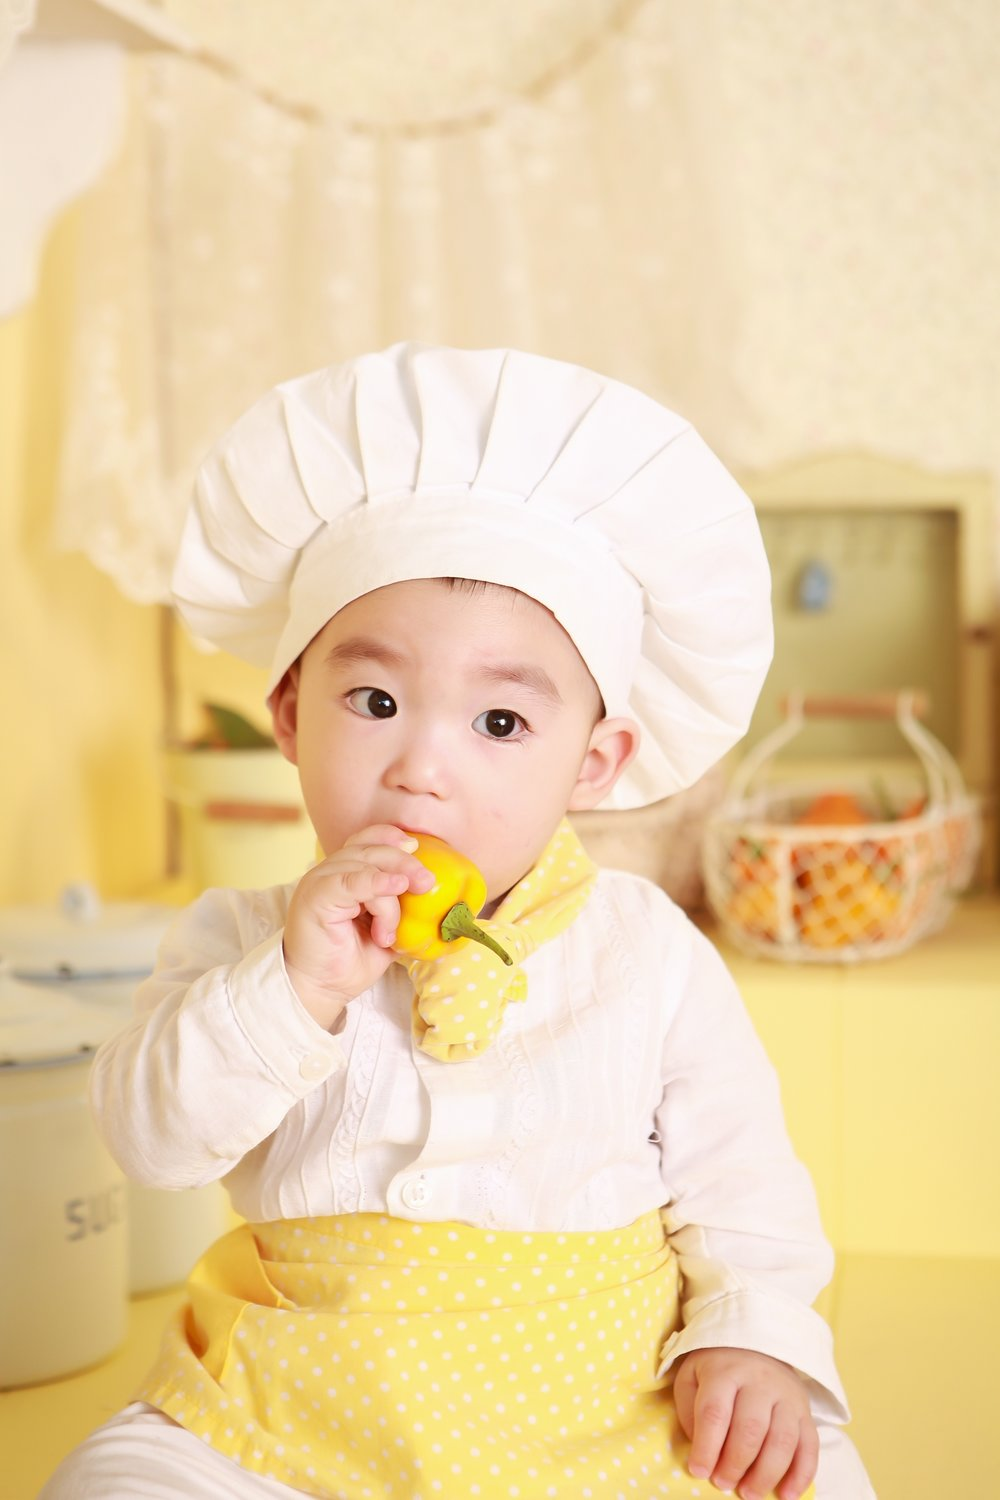 cooking-baby-only-kitchen.jpg